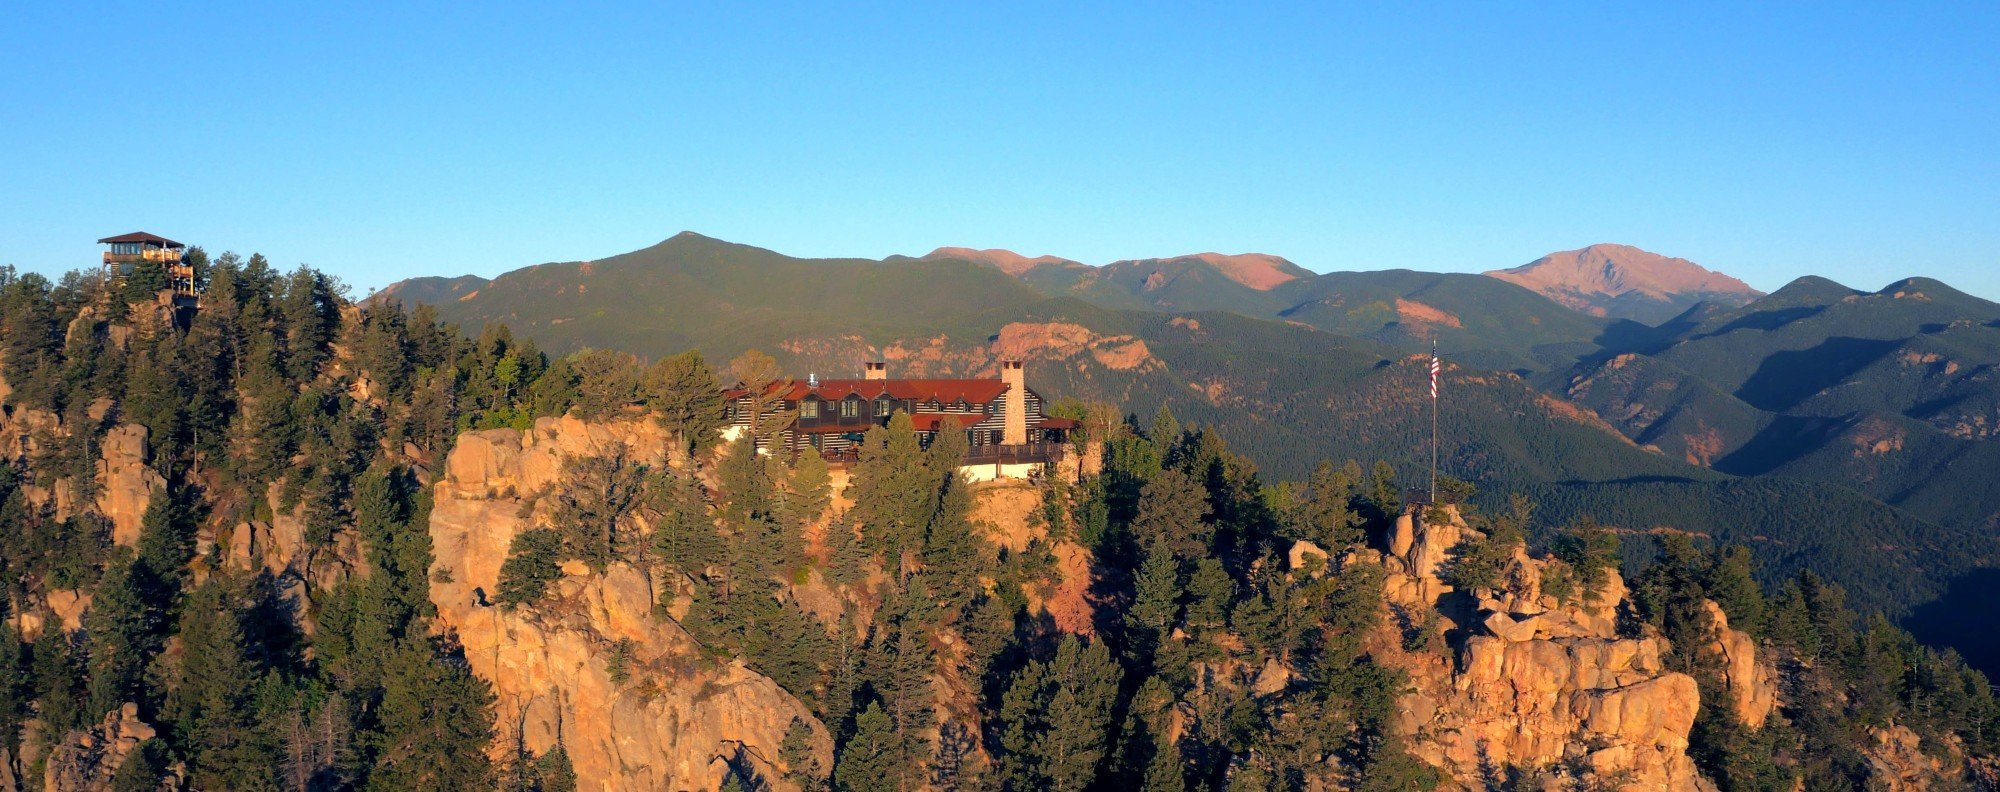 The Cloud Camp lodge at The Broadmoor is located atop Cheyenne Mountain.